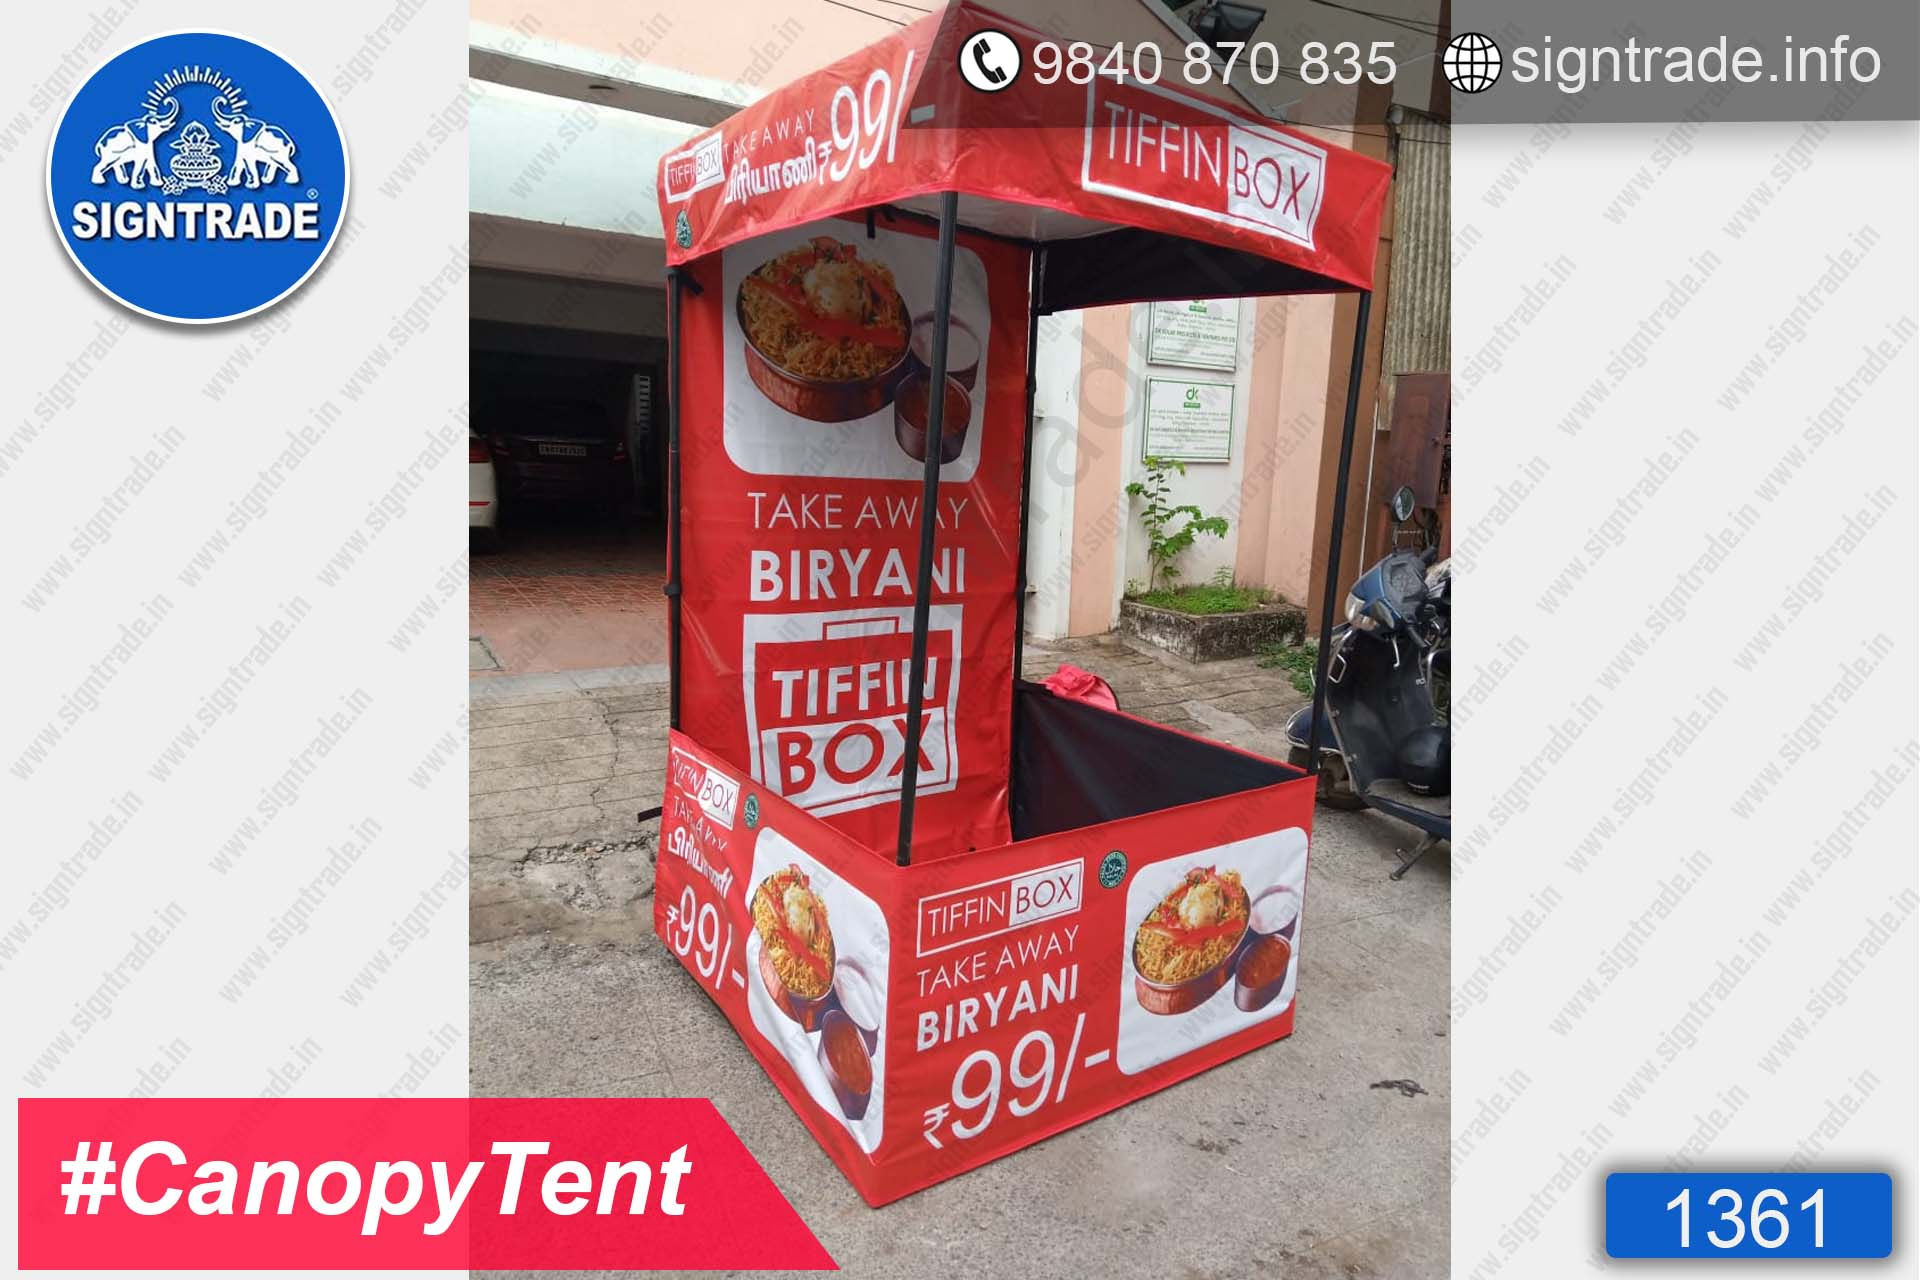 Tiffin Box Biryani - Chennai - SIGNTRADE - Canopy Tent Manufactures in Chennai